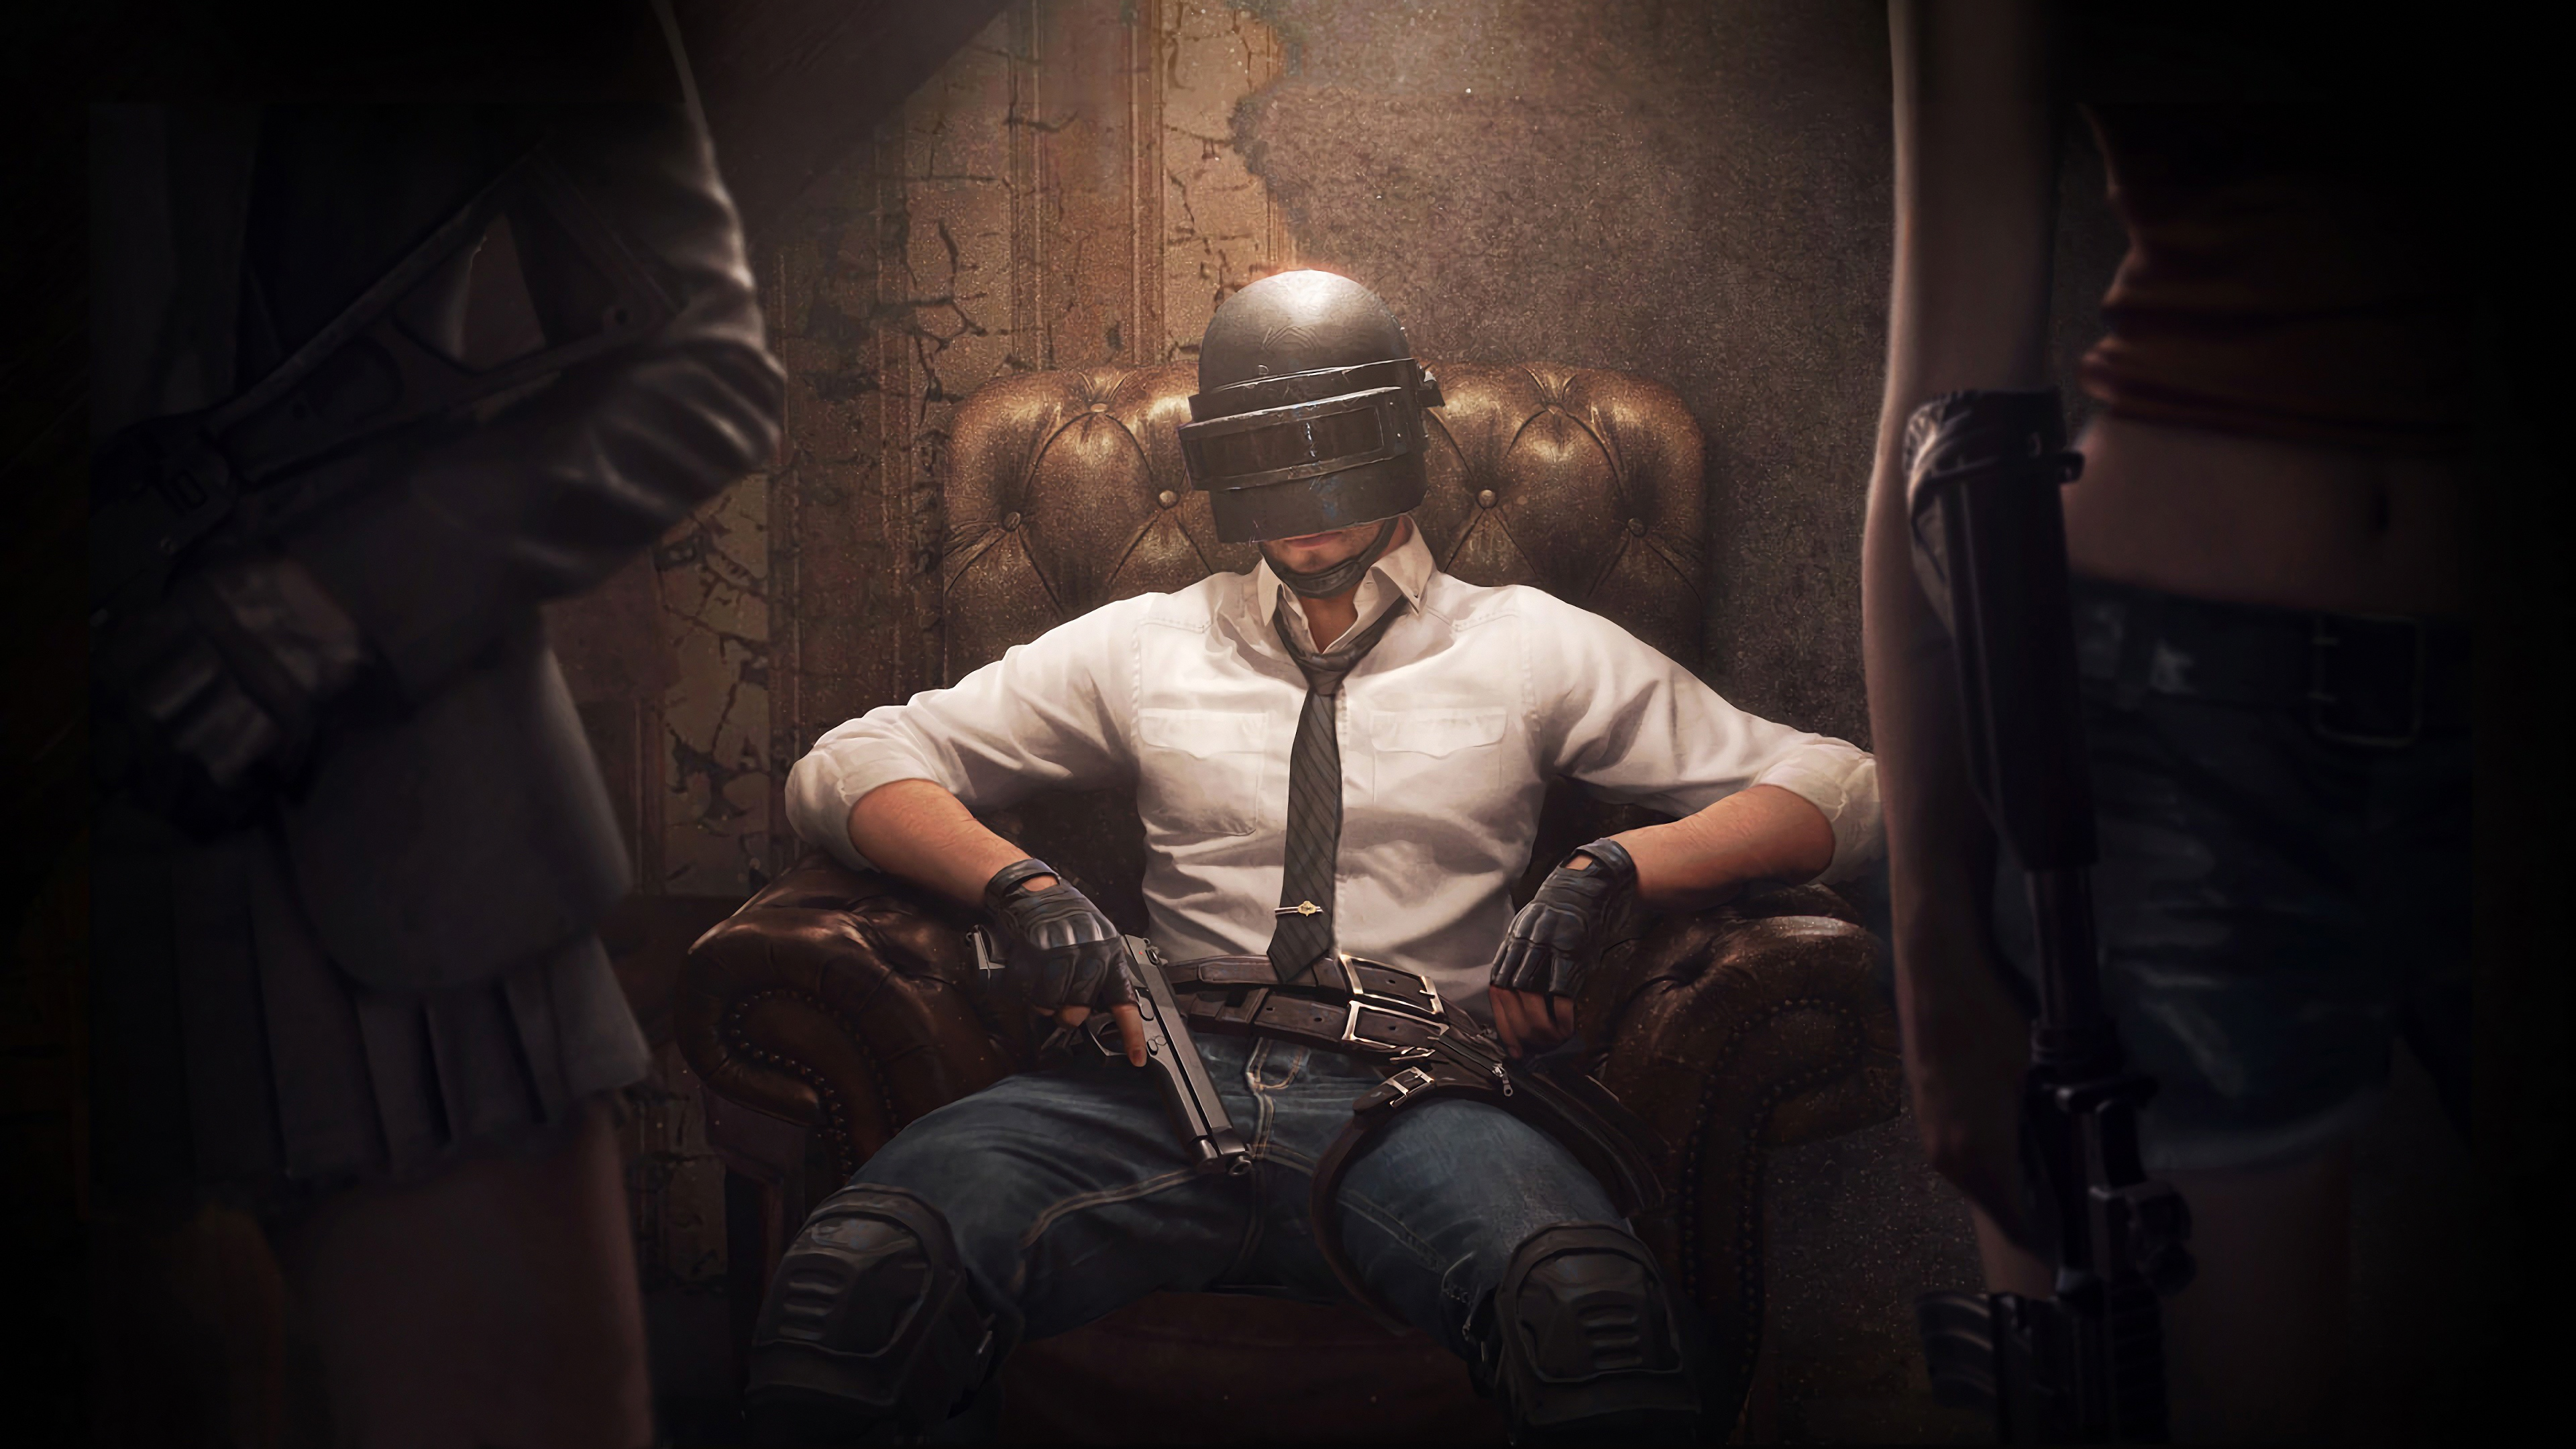 Pubg Full Hd Wallpaper Download For Pc: Pubg Android Game 4k, HD Games, 4k Wallpapers, Images